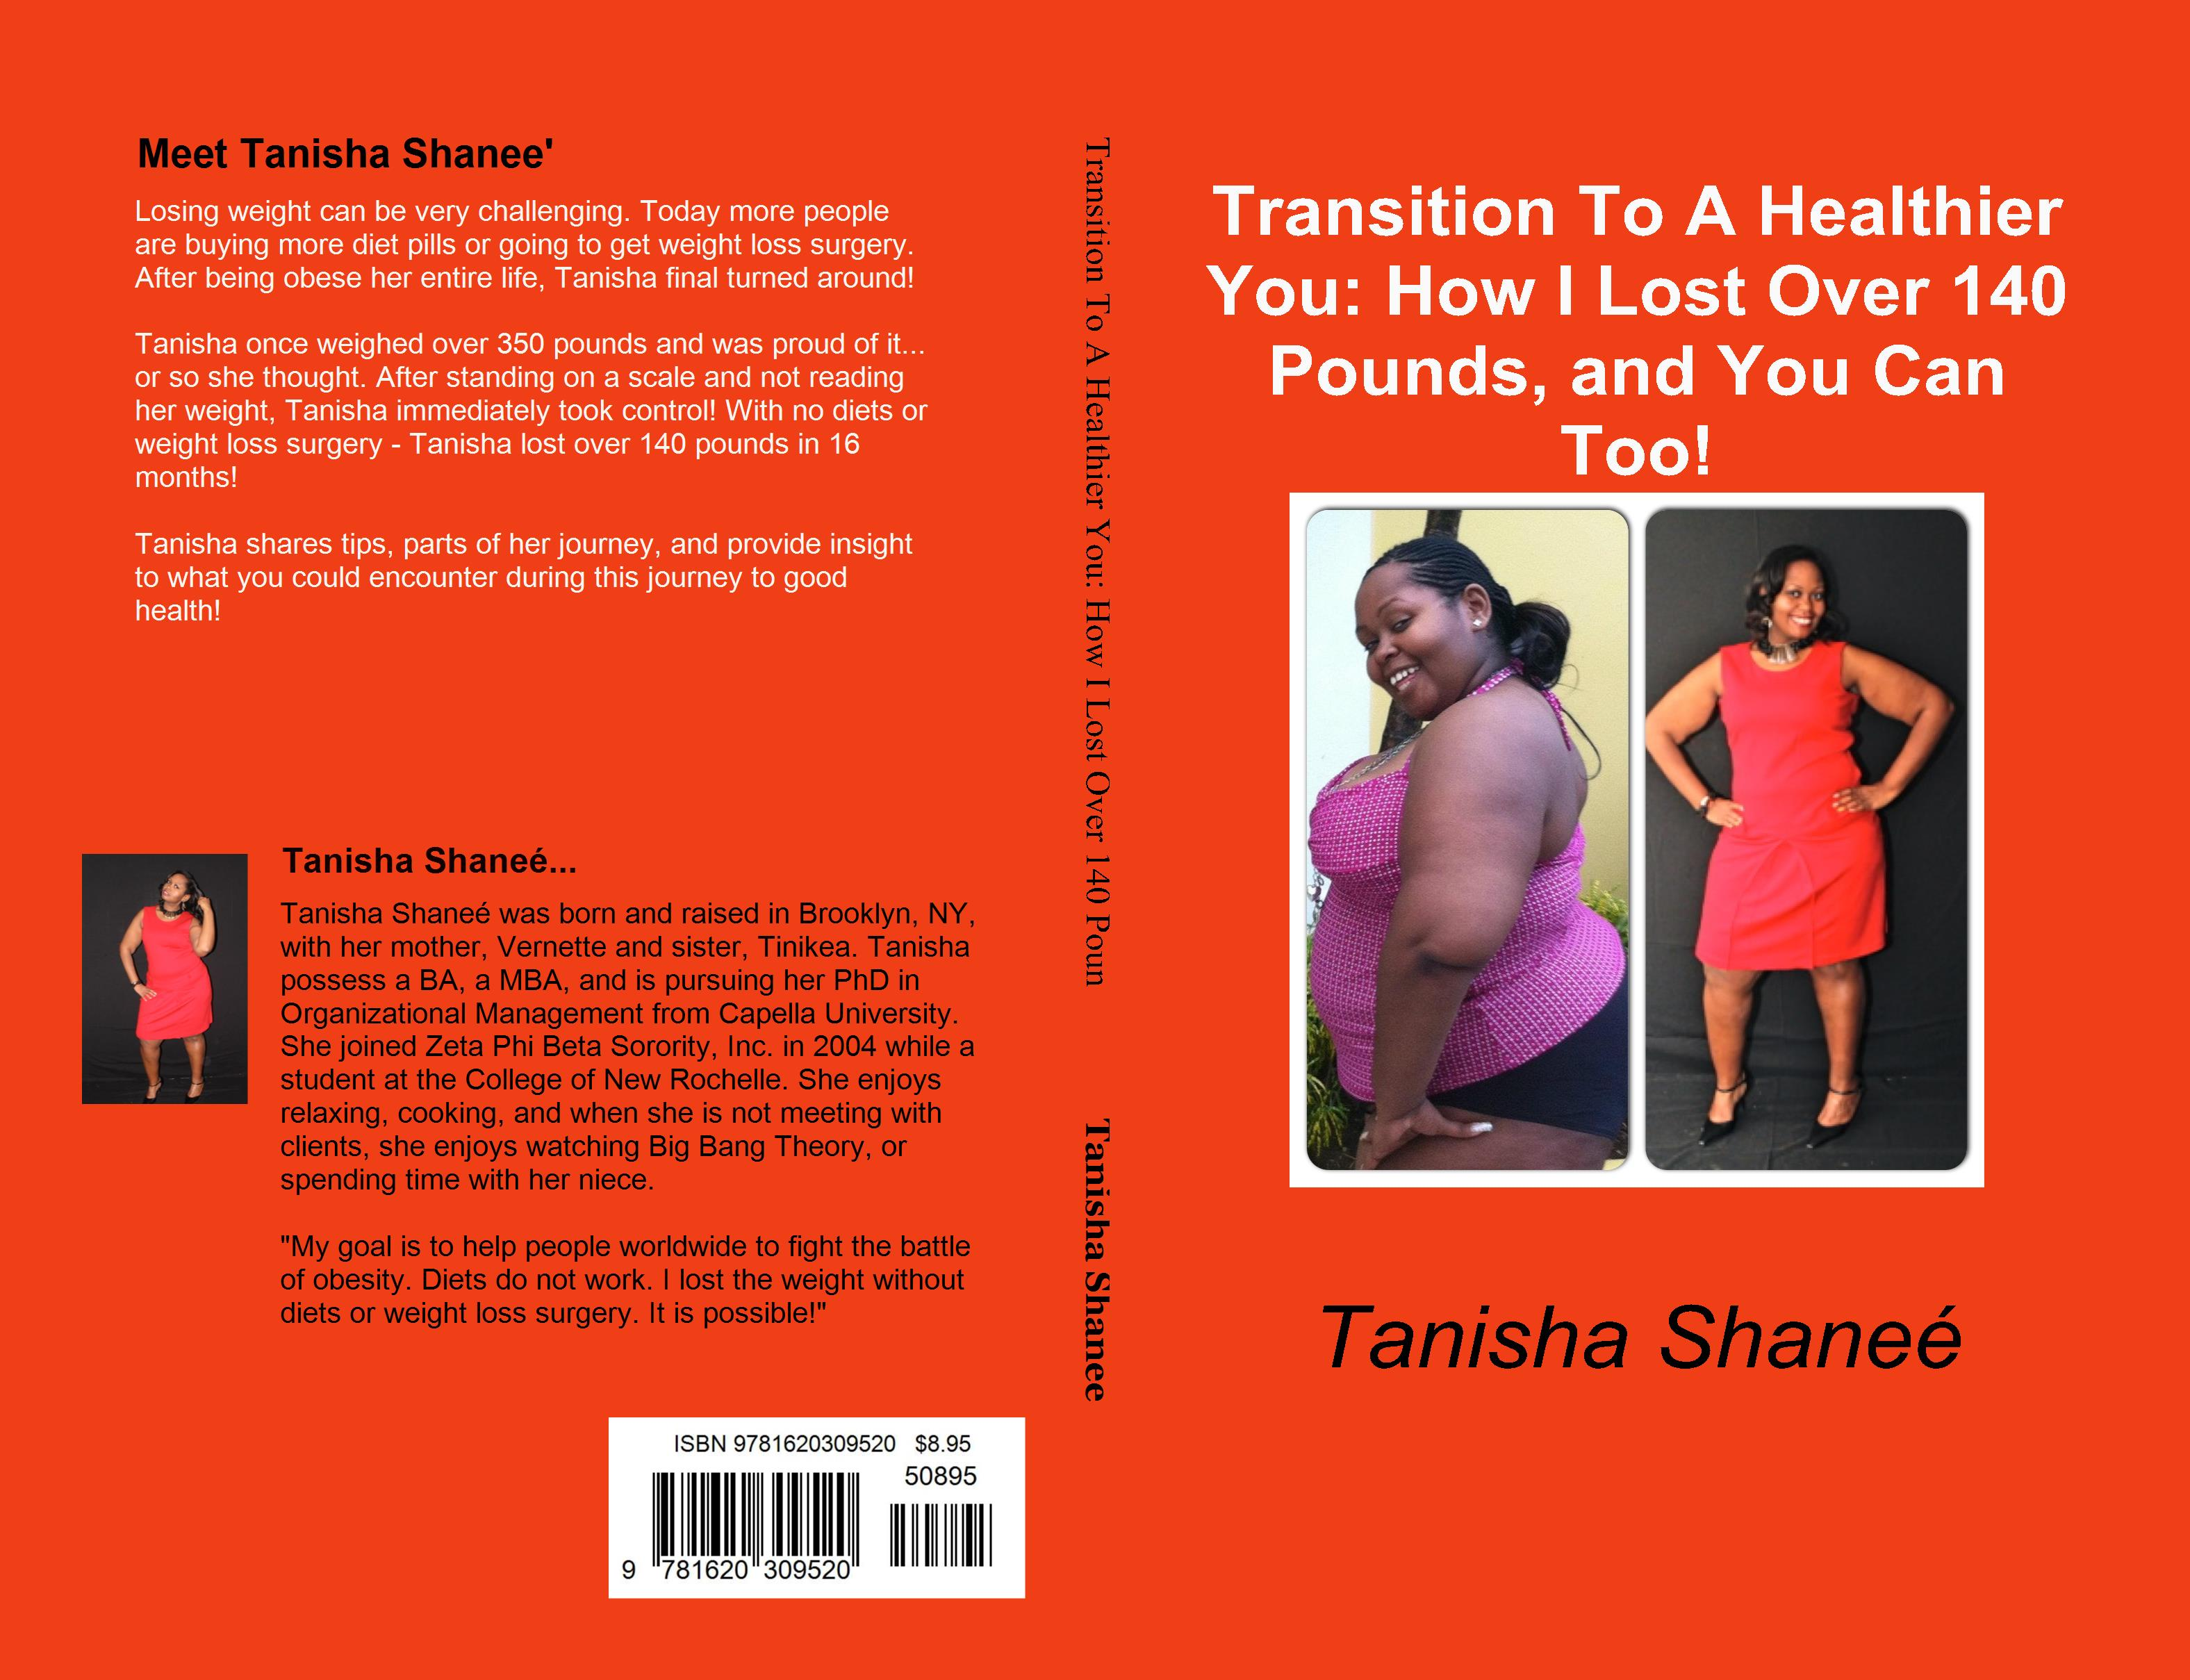 Transition To A Healthier You: How I Lost Over 140 Pounds, and You Can Too! cover image